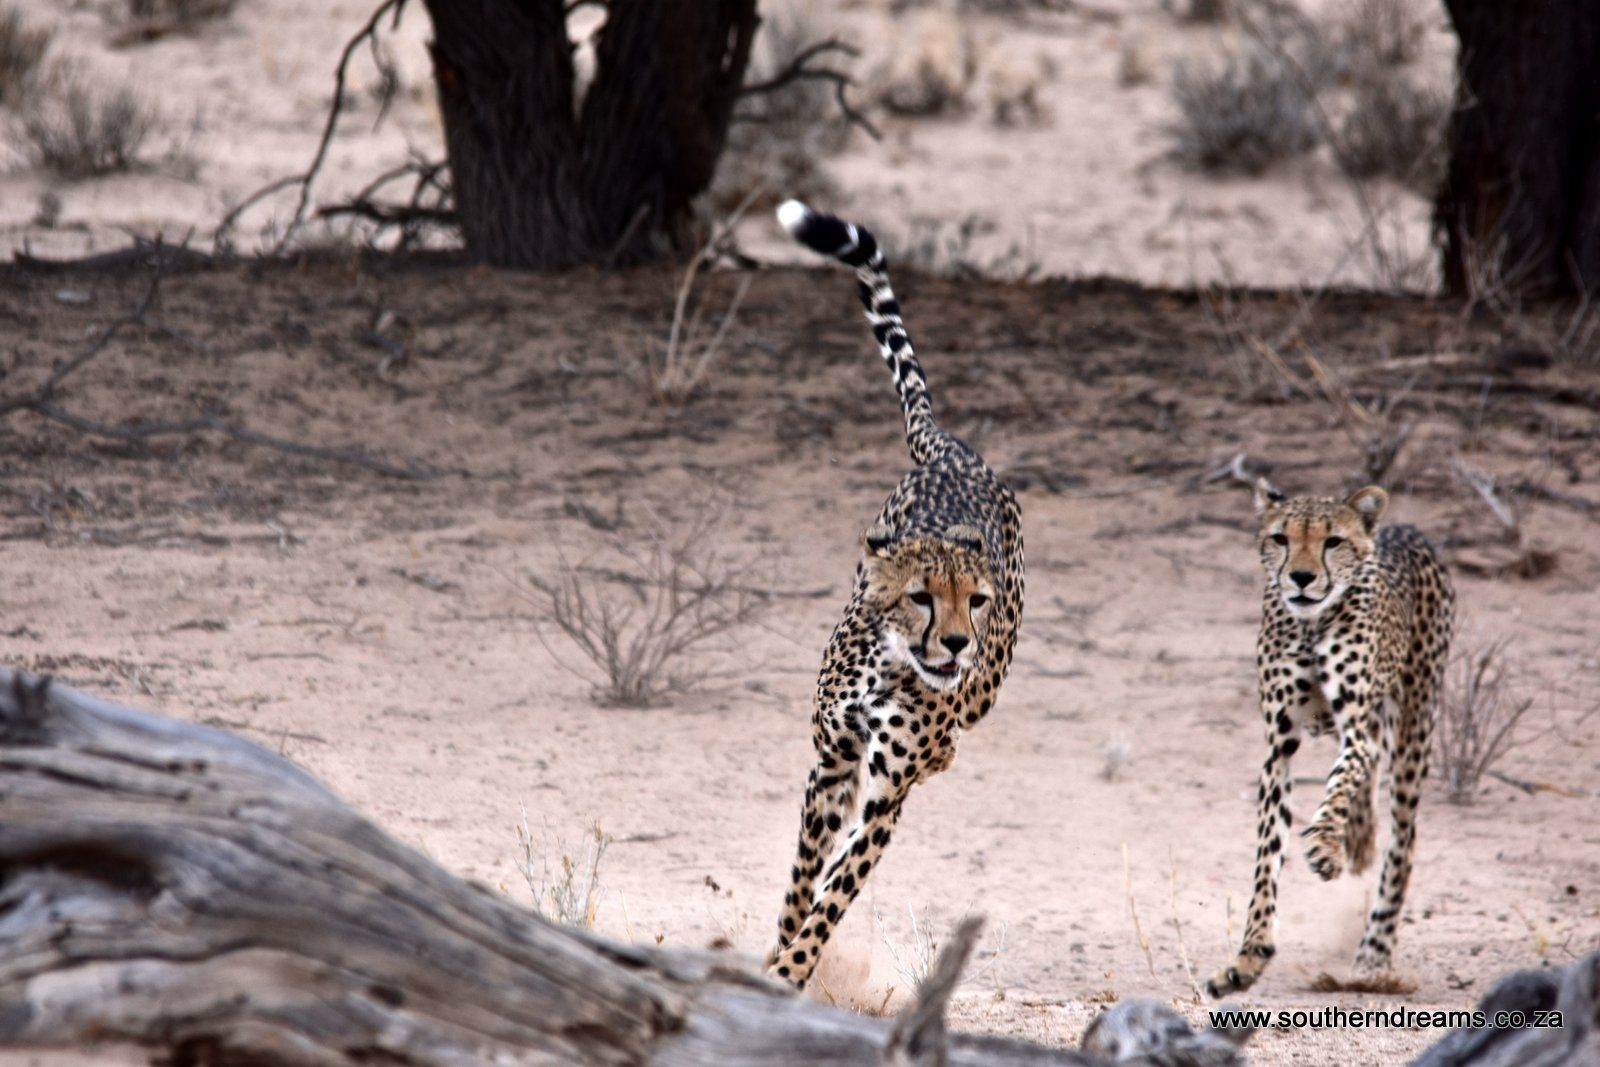 Kgalagadi Cheetah - Corinne and her Scallywags